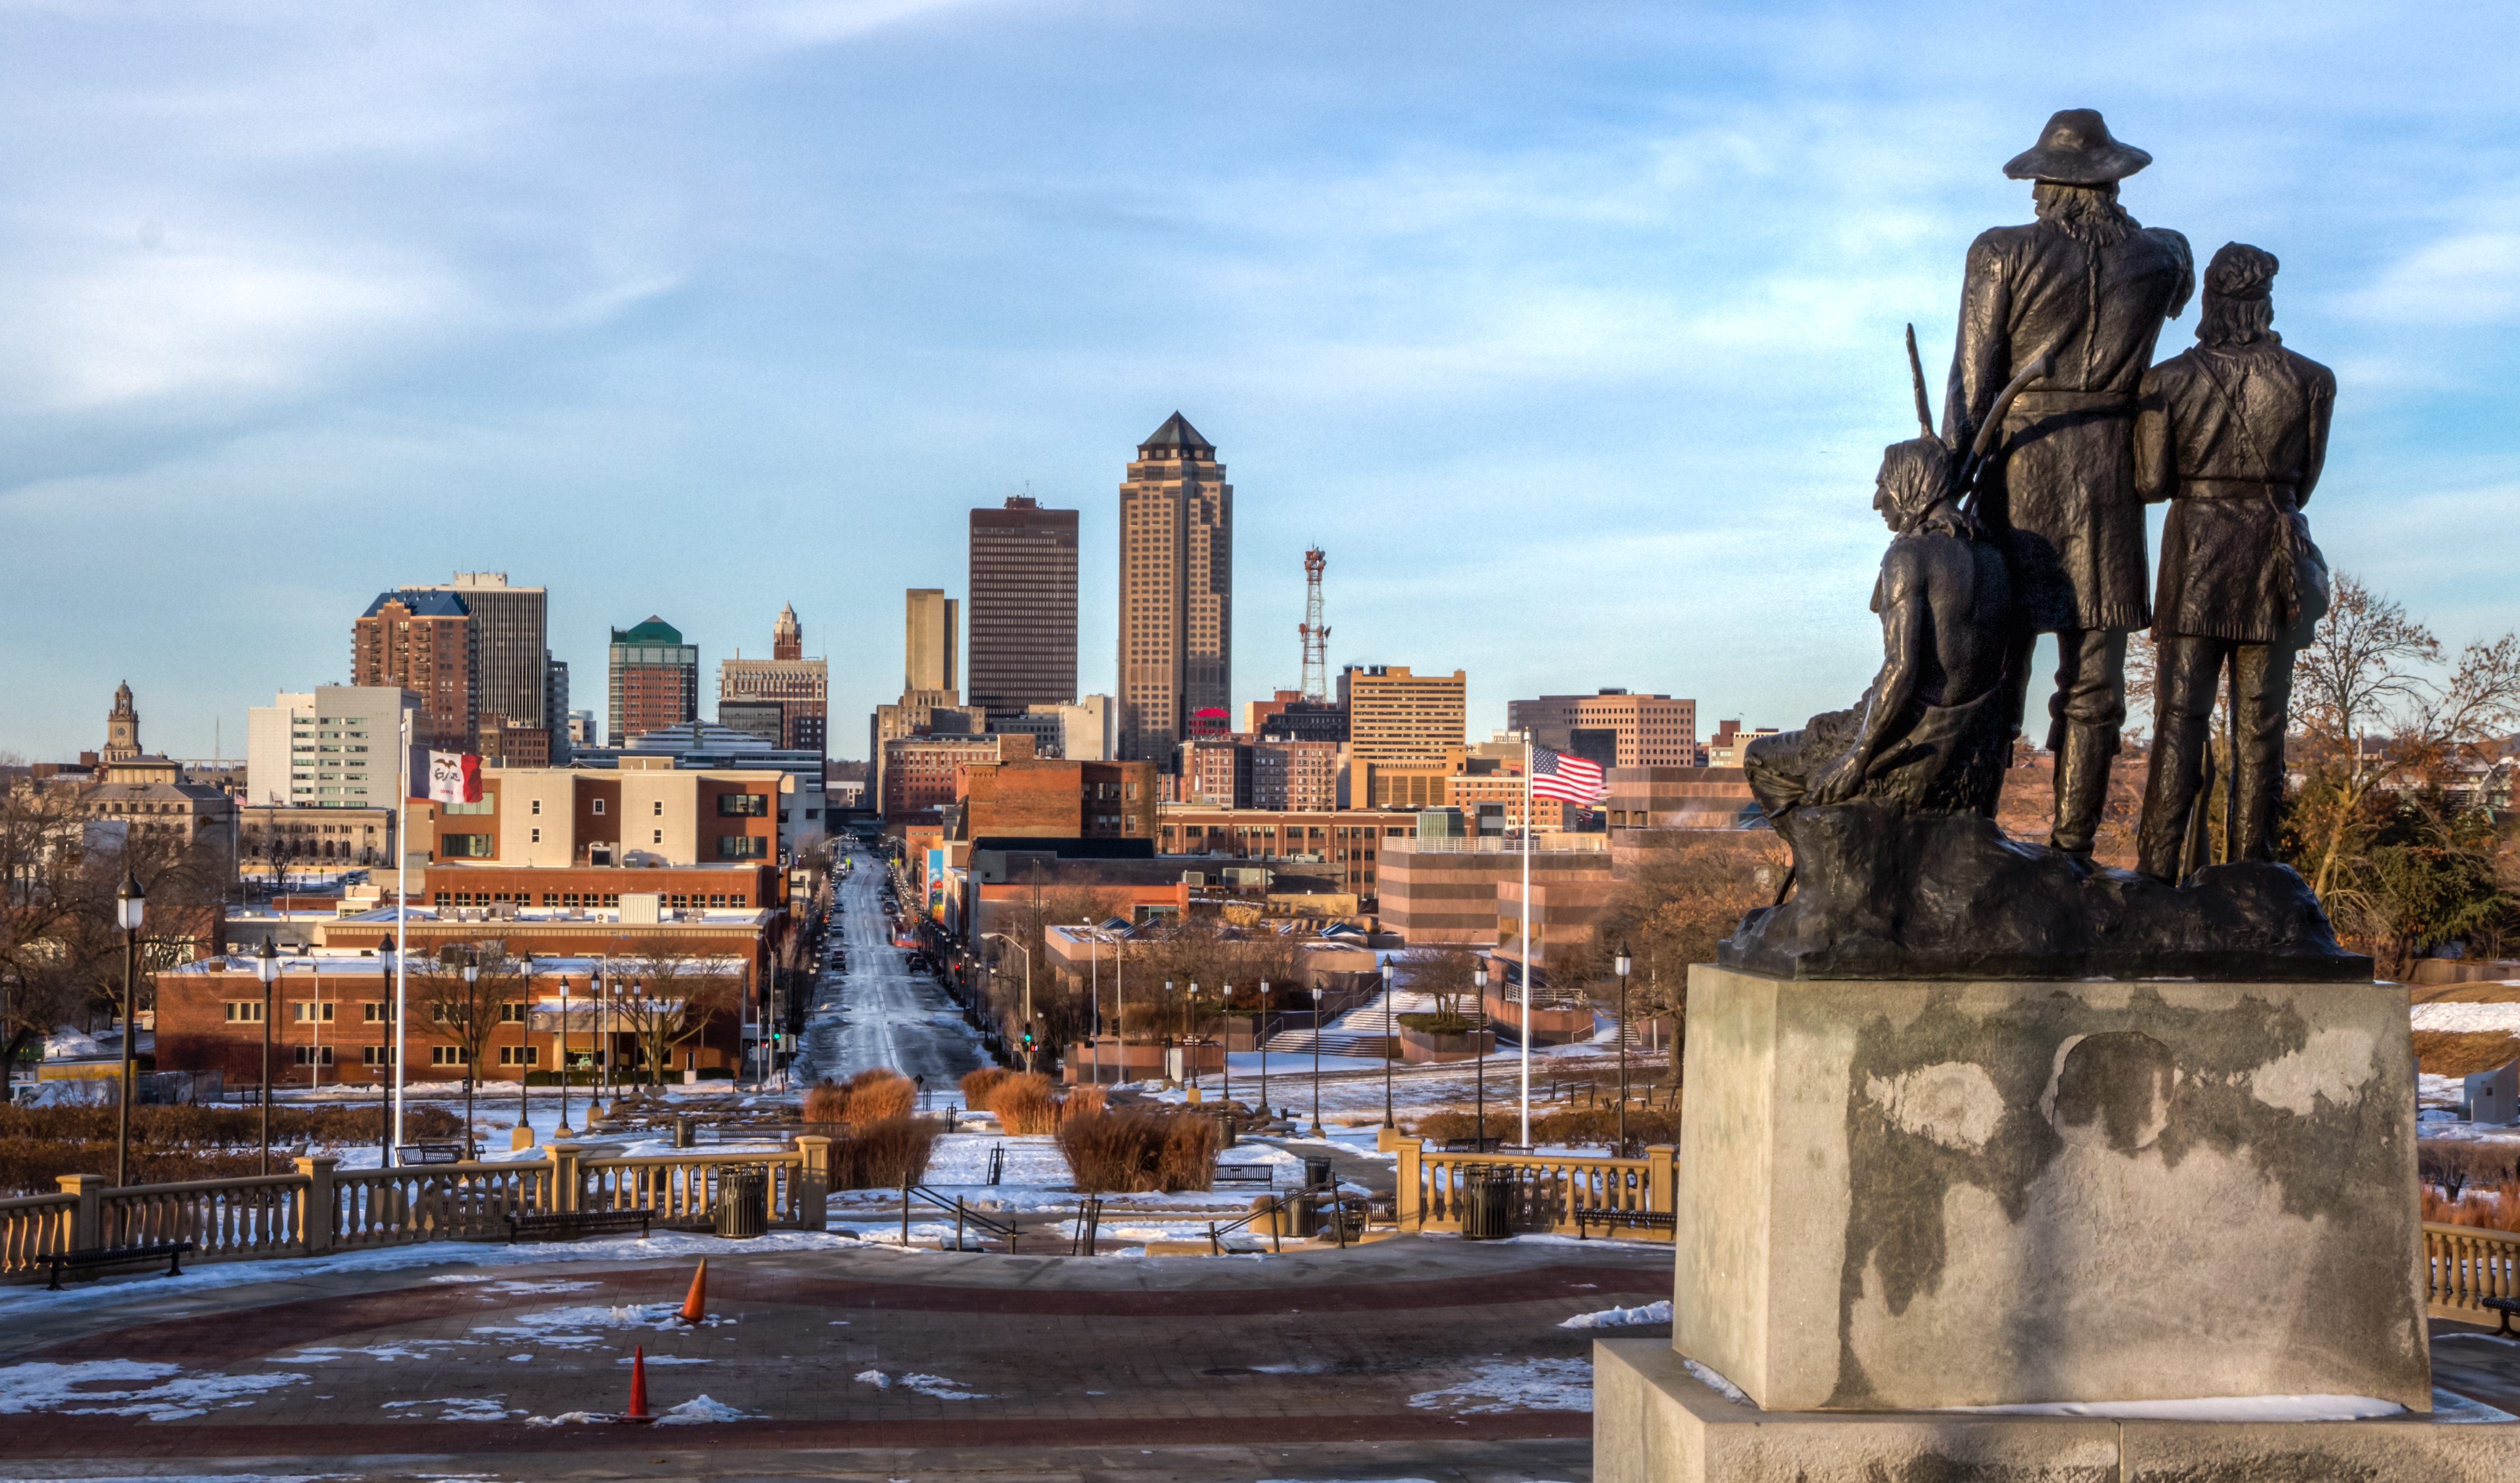 des moines Discover des moines, iowa with the help of your friends search for restaurants, hotels, museums and more.